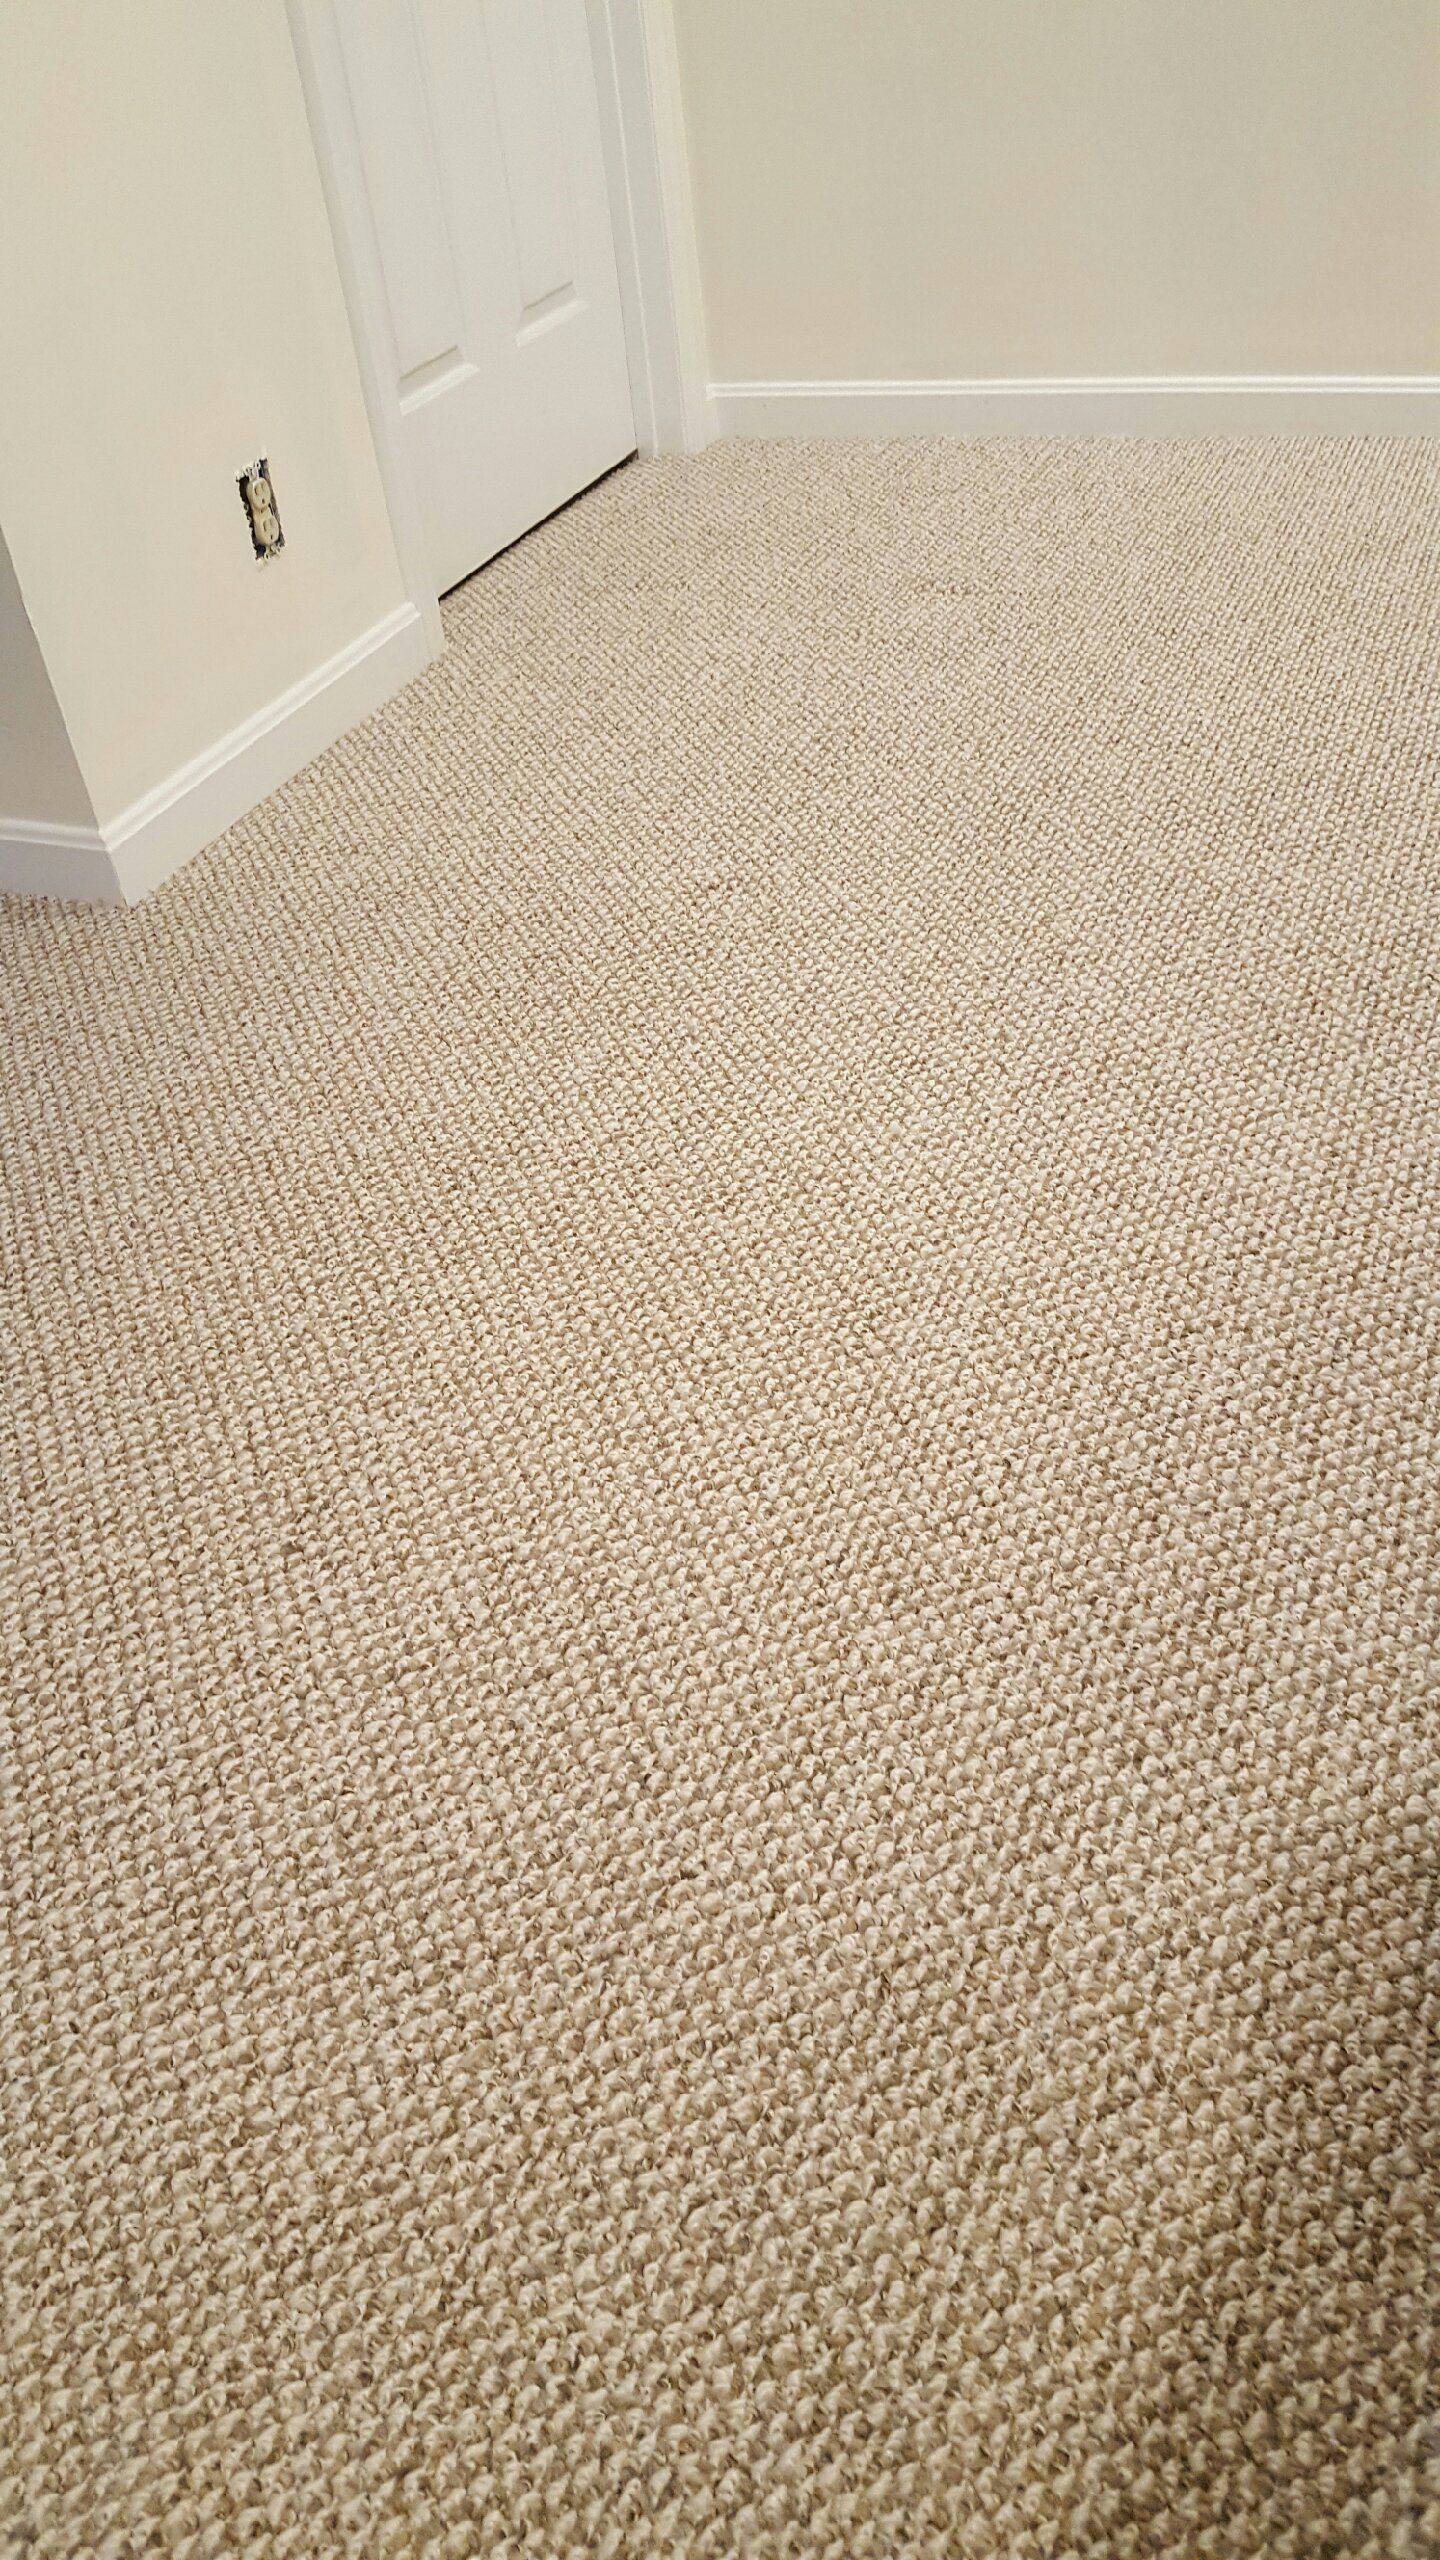 Bliss By Beaulieu Wall To Wall Carpet Style Sherwood Park Wall Carpet Home Carpet Carpet Trends